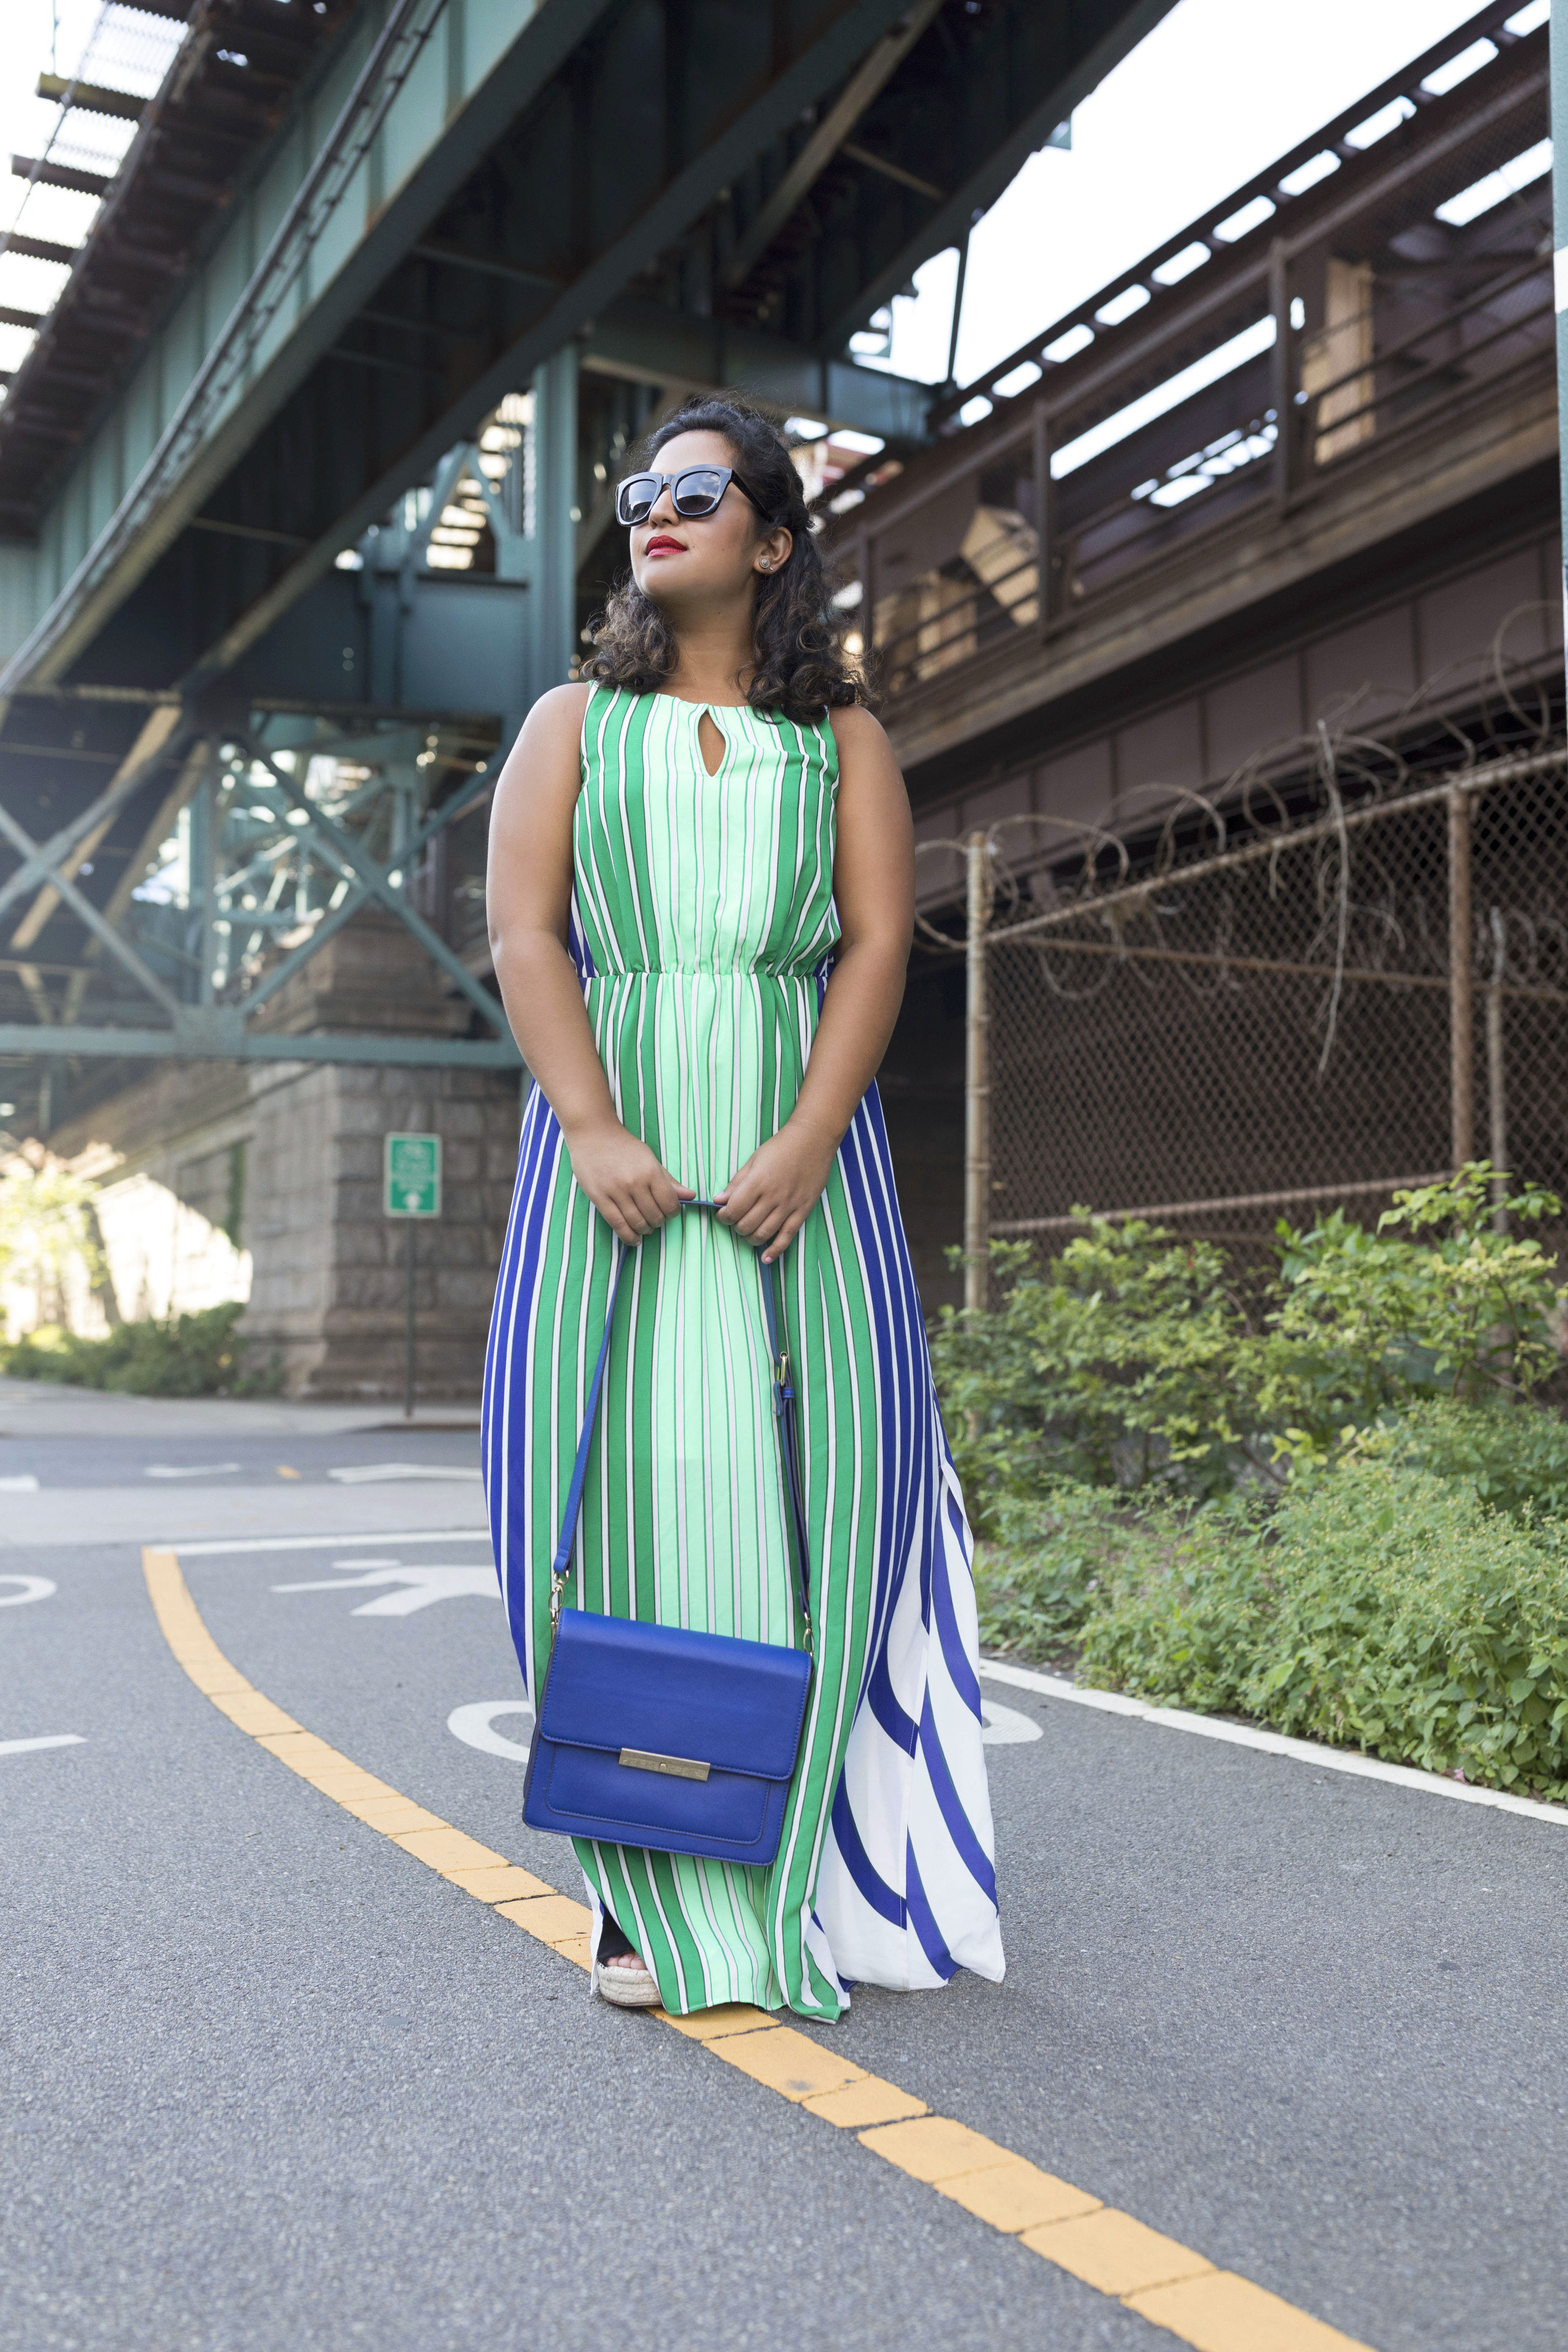 Krity S x Adrianna Papell x Stripped Maxi6.jpg